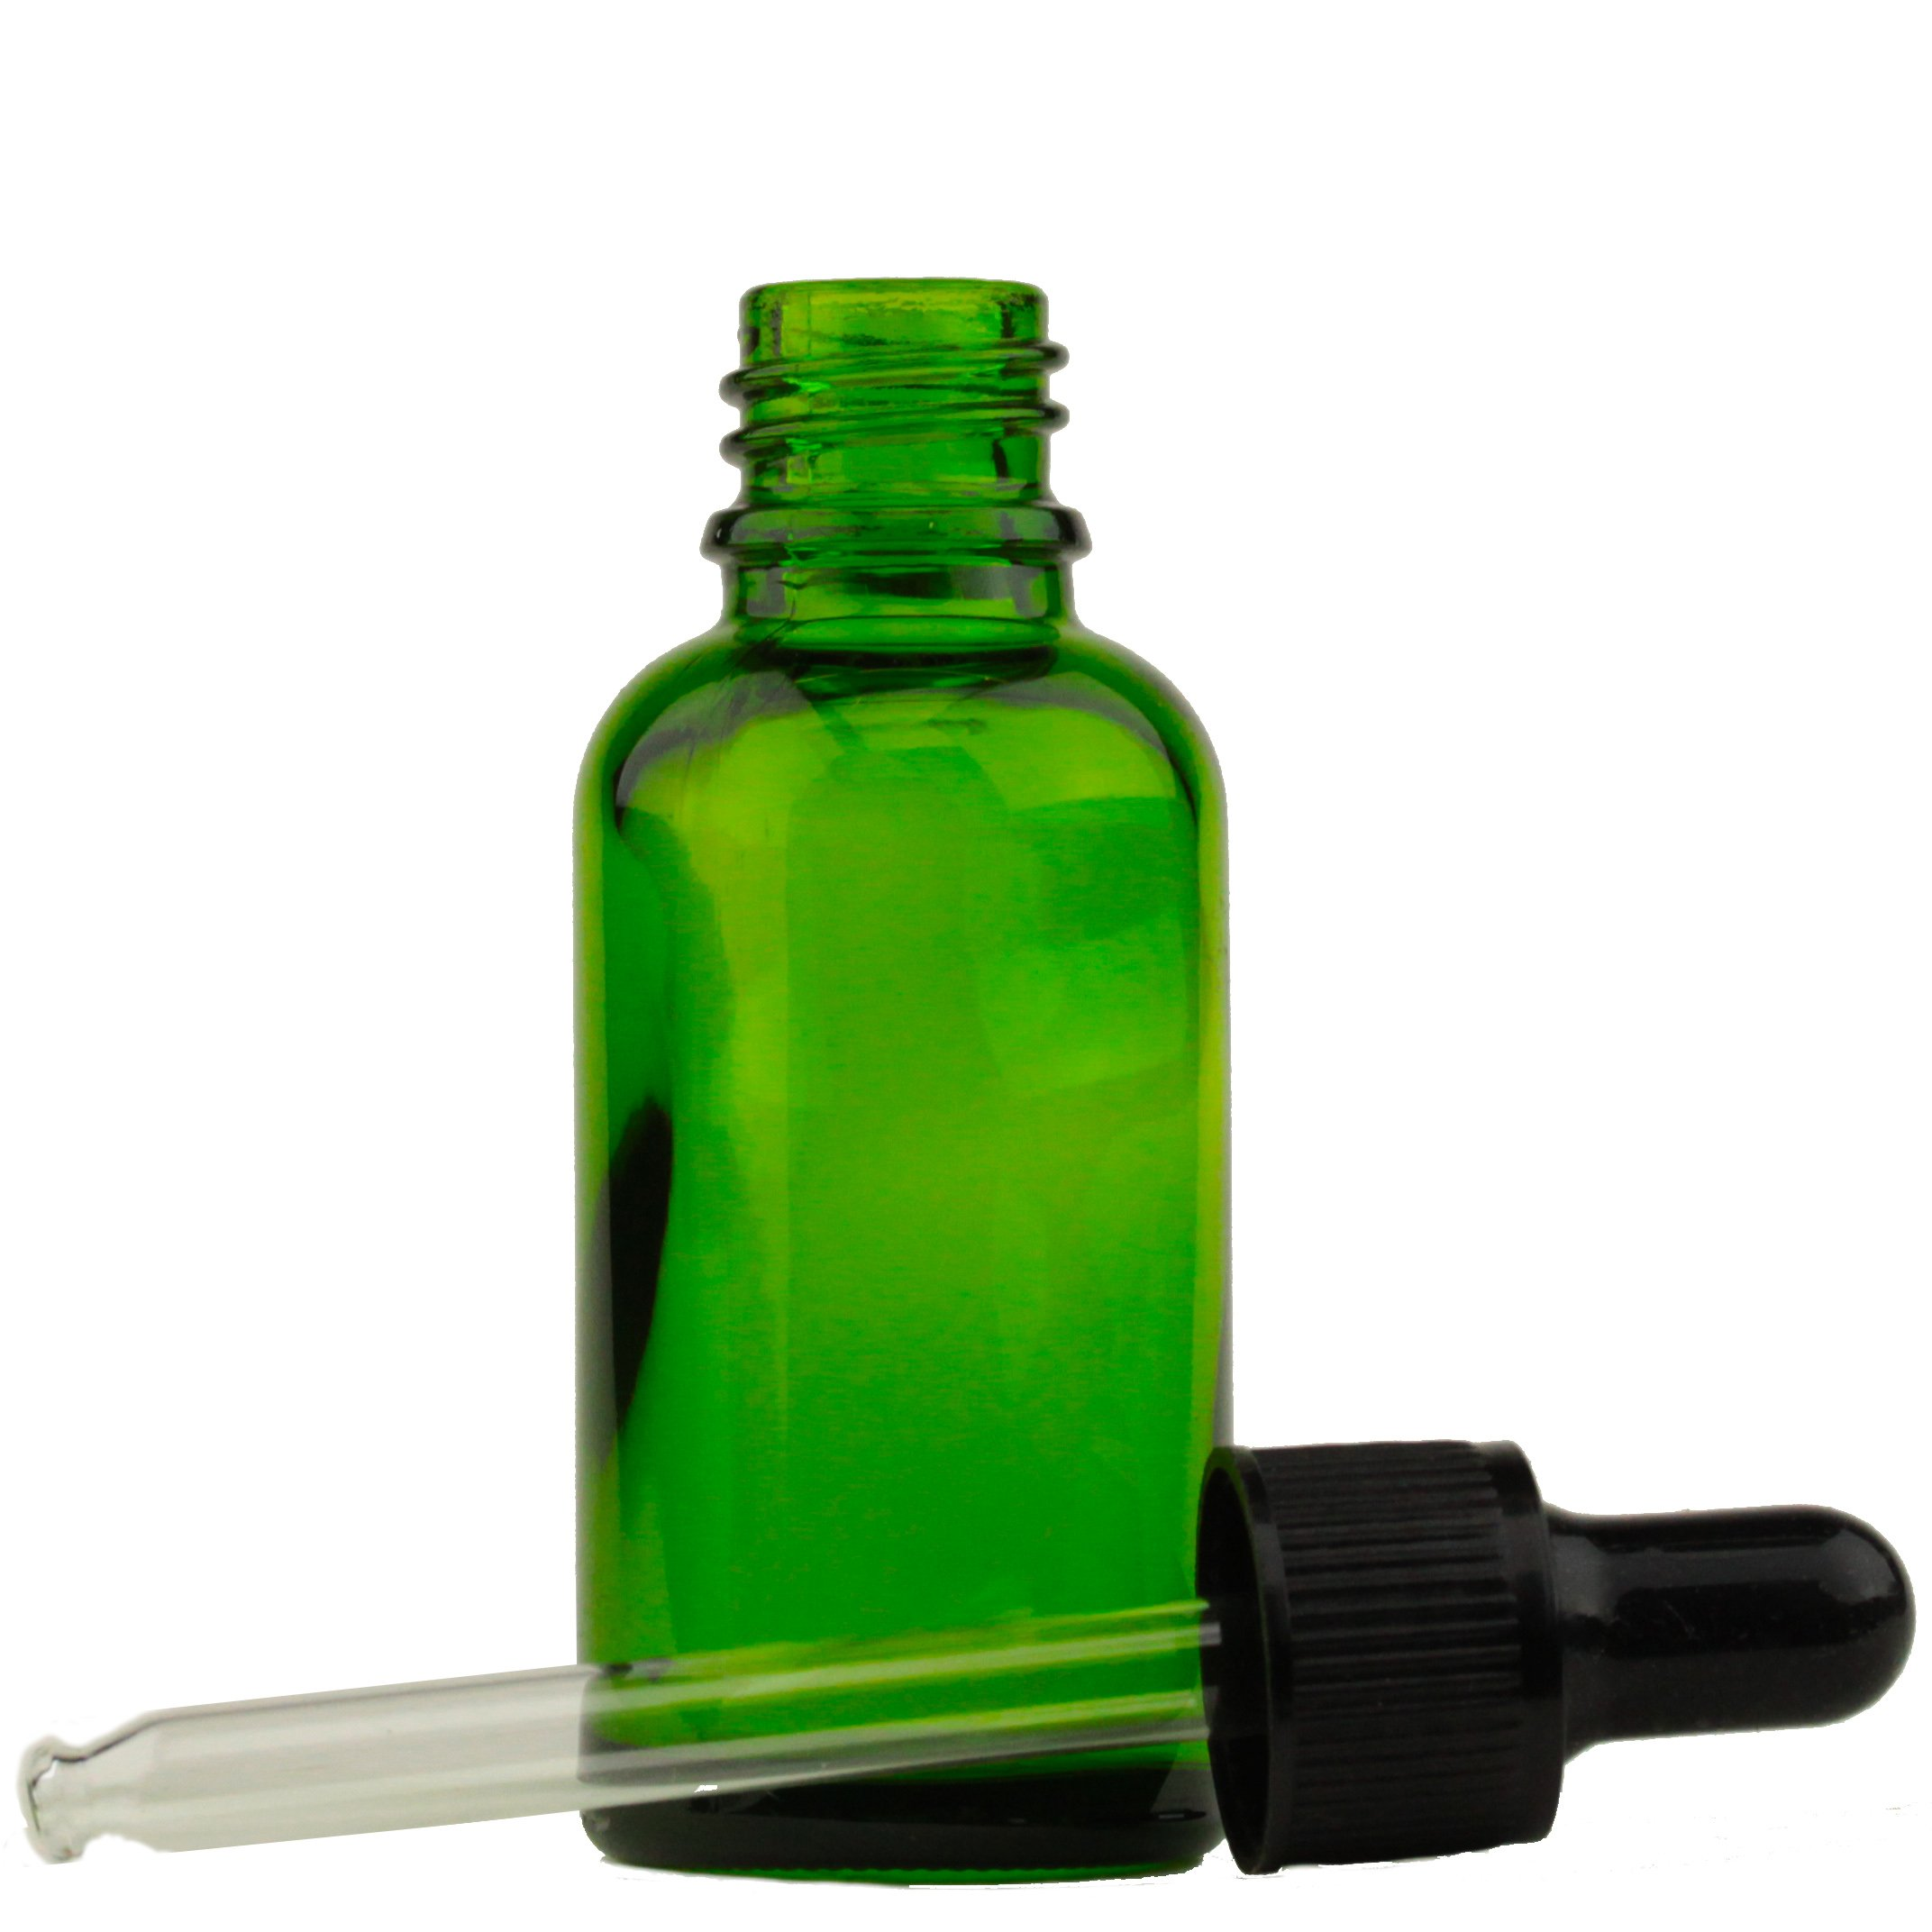 1oz. (30ml) Green Glass Essential Oil Bottle with Black Threaded Cap w/Attached Black Rubber Bulb and Glass Dropper Tube (6 Pack)